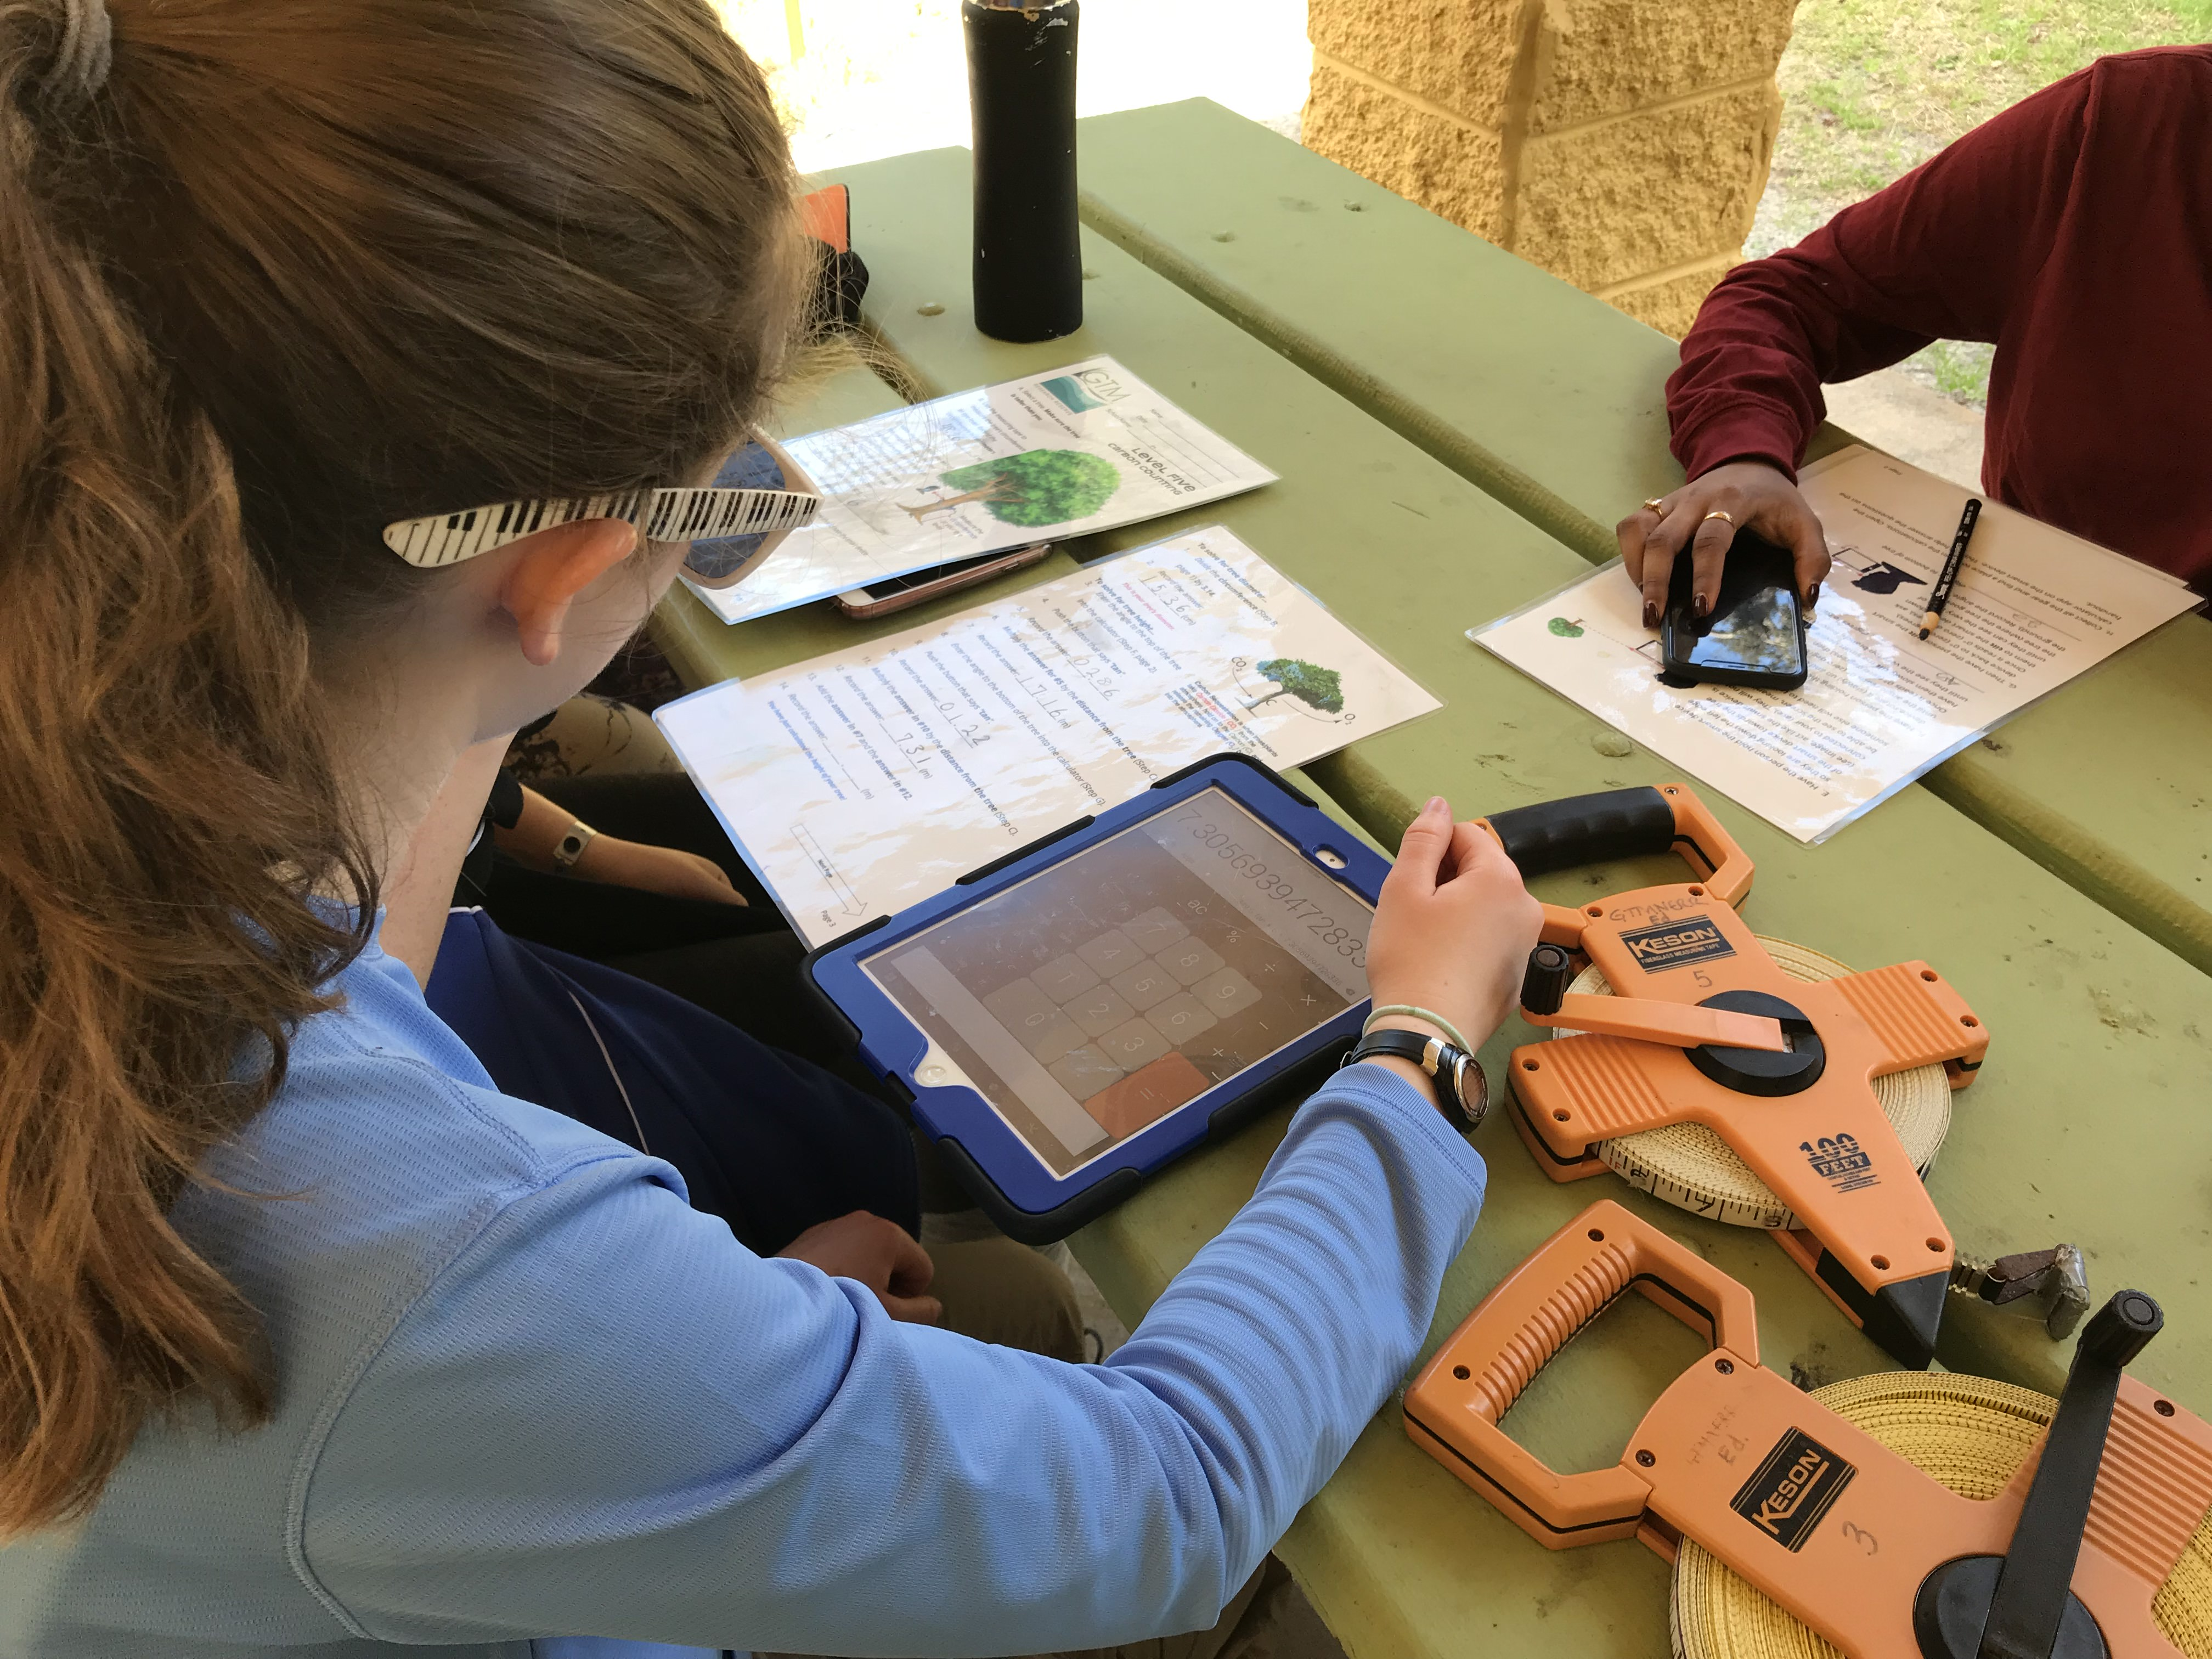 Students work on a project with technical tools